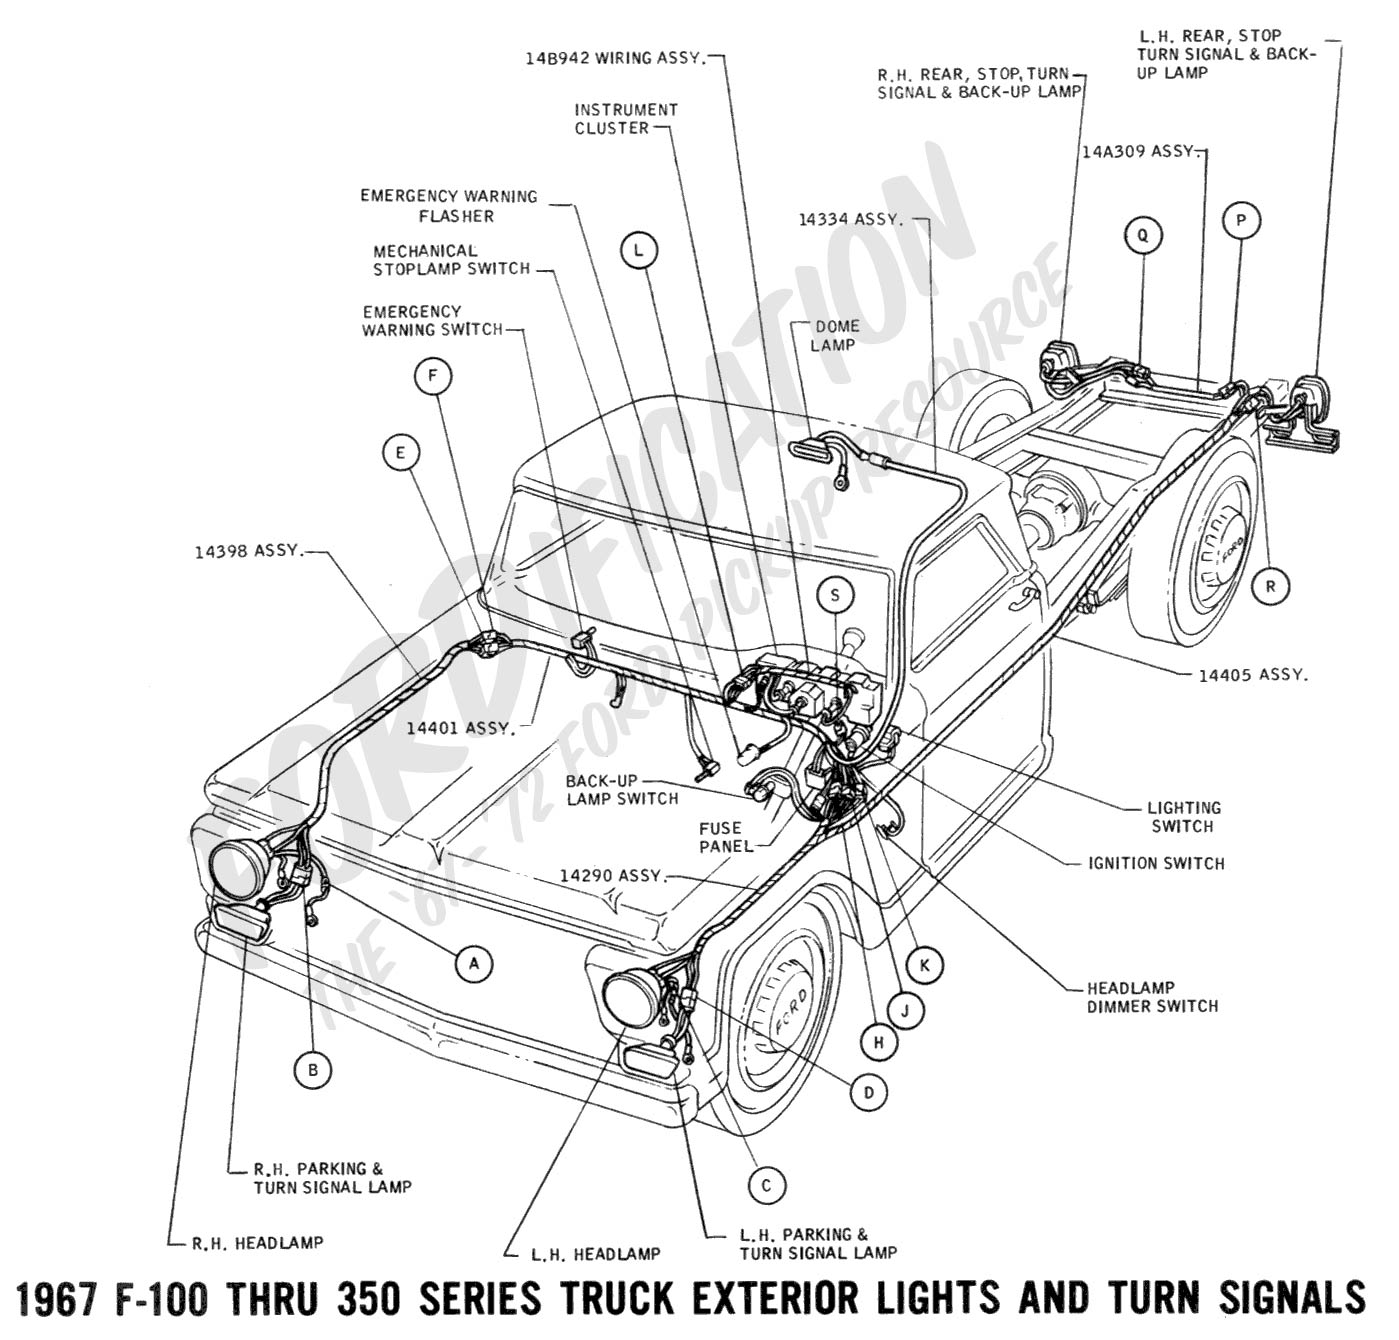 2007 chevy silverado transmition wiring diagram